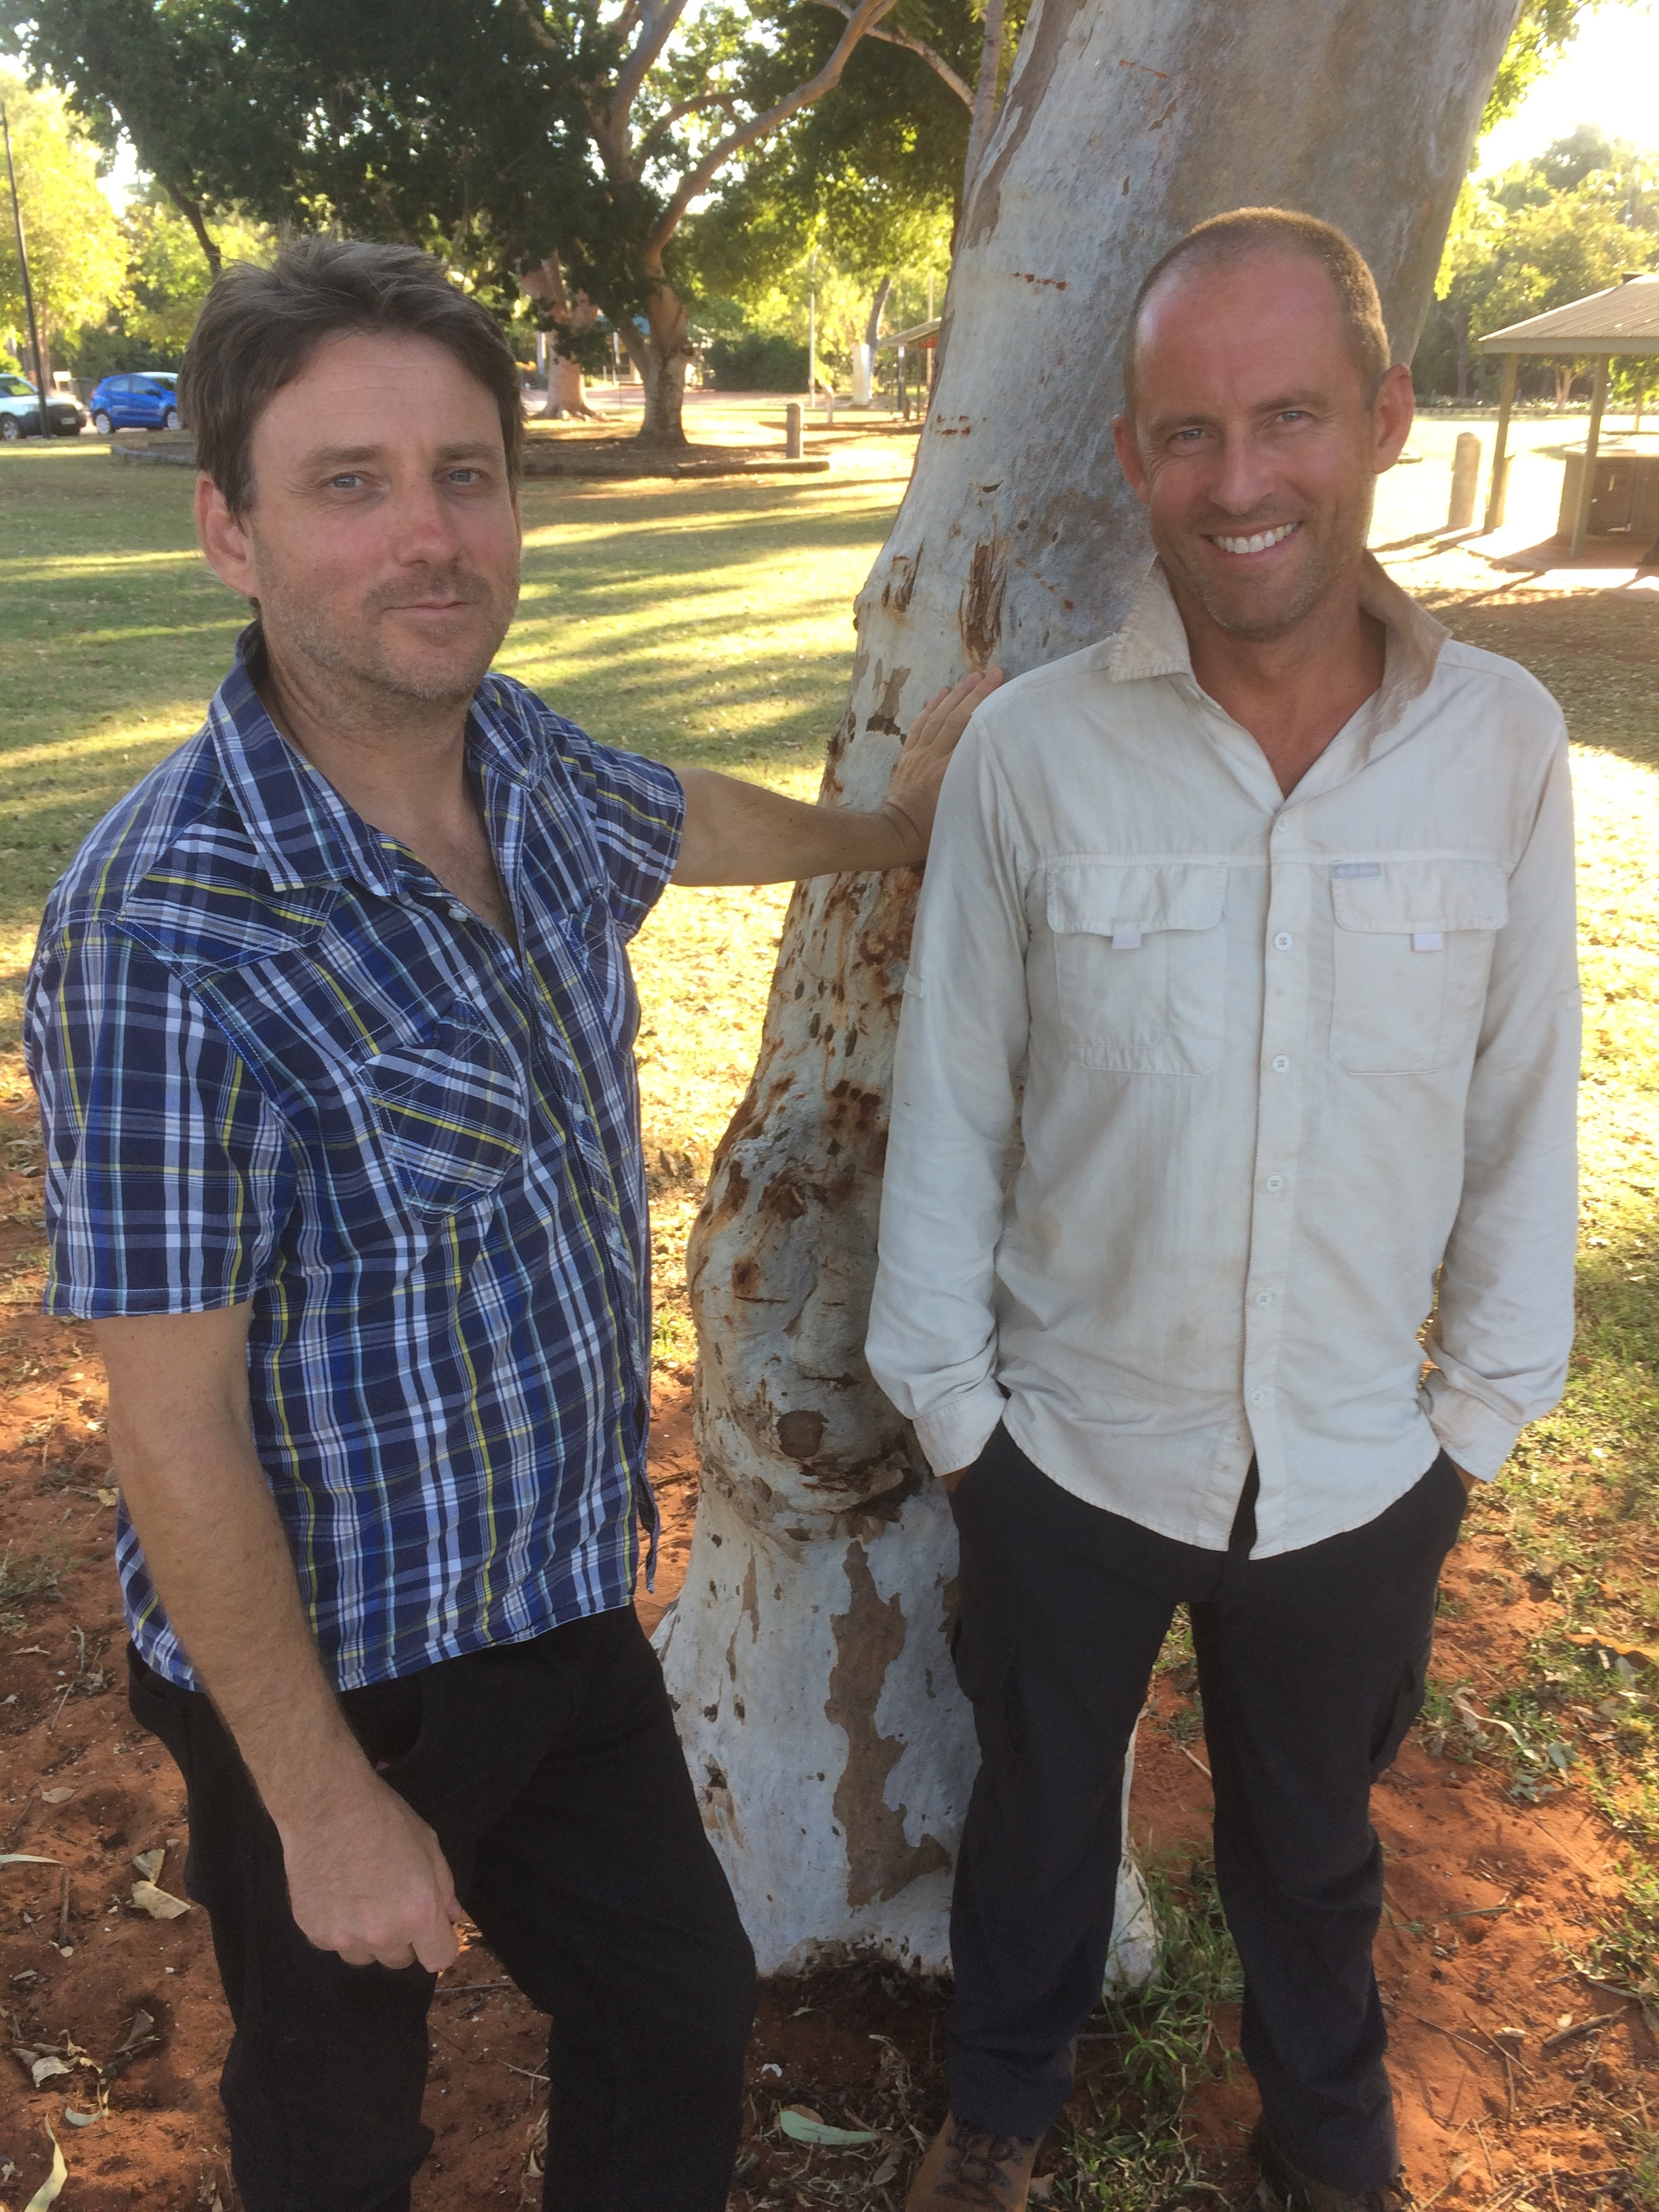 Martin Pritchard & Anthony James at Town Beach in Broome. Pic: Olivia Cheng.